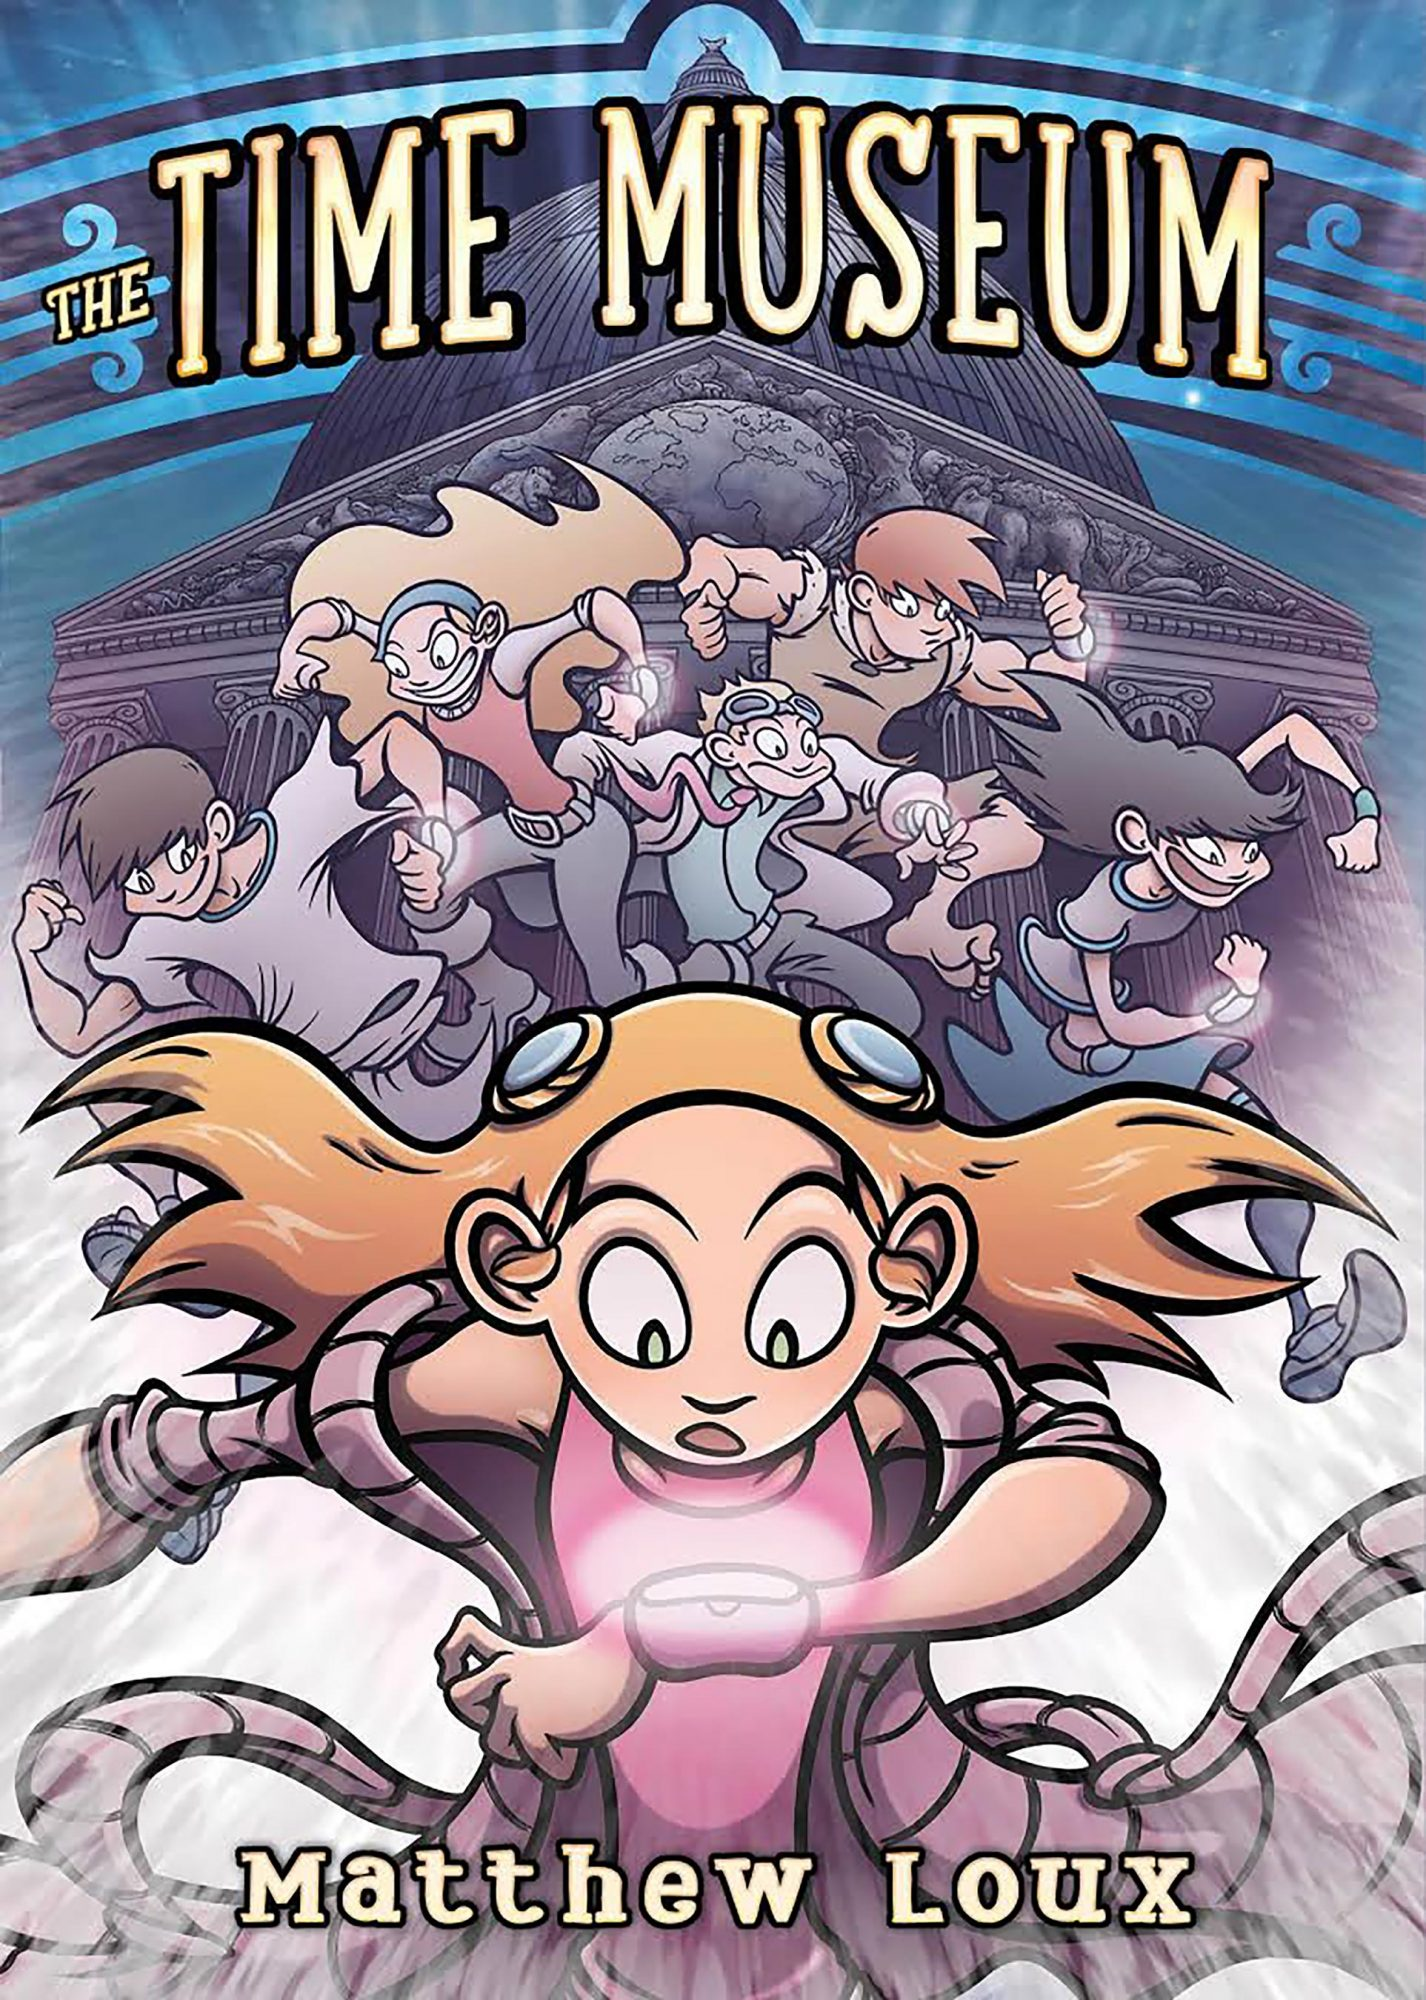 The Time Museum by Matthew Loux CR: First Second